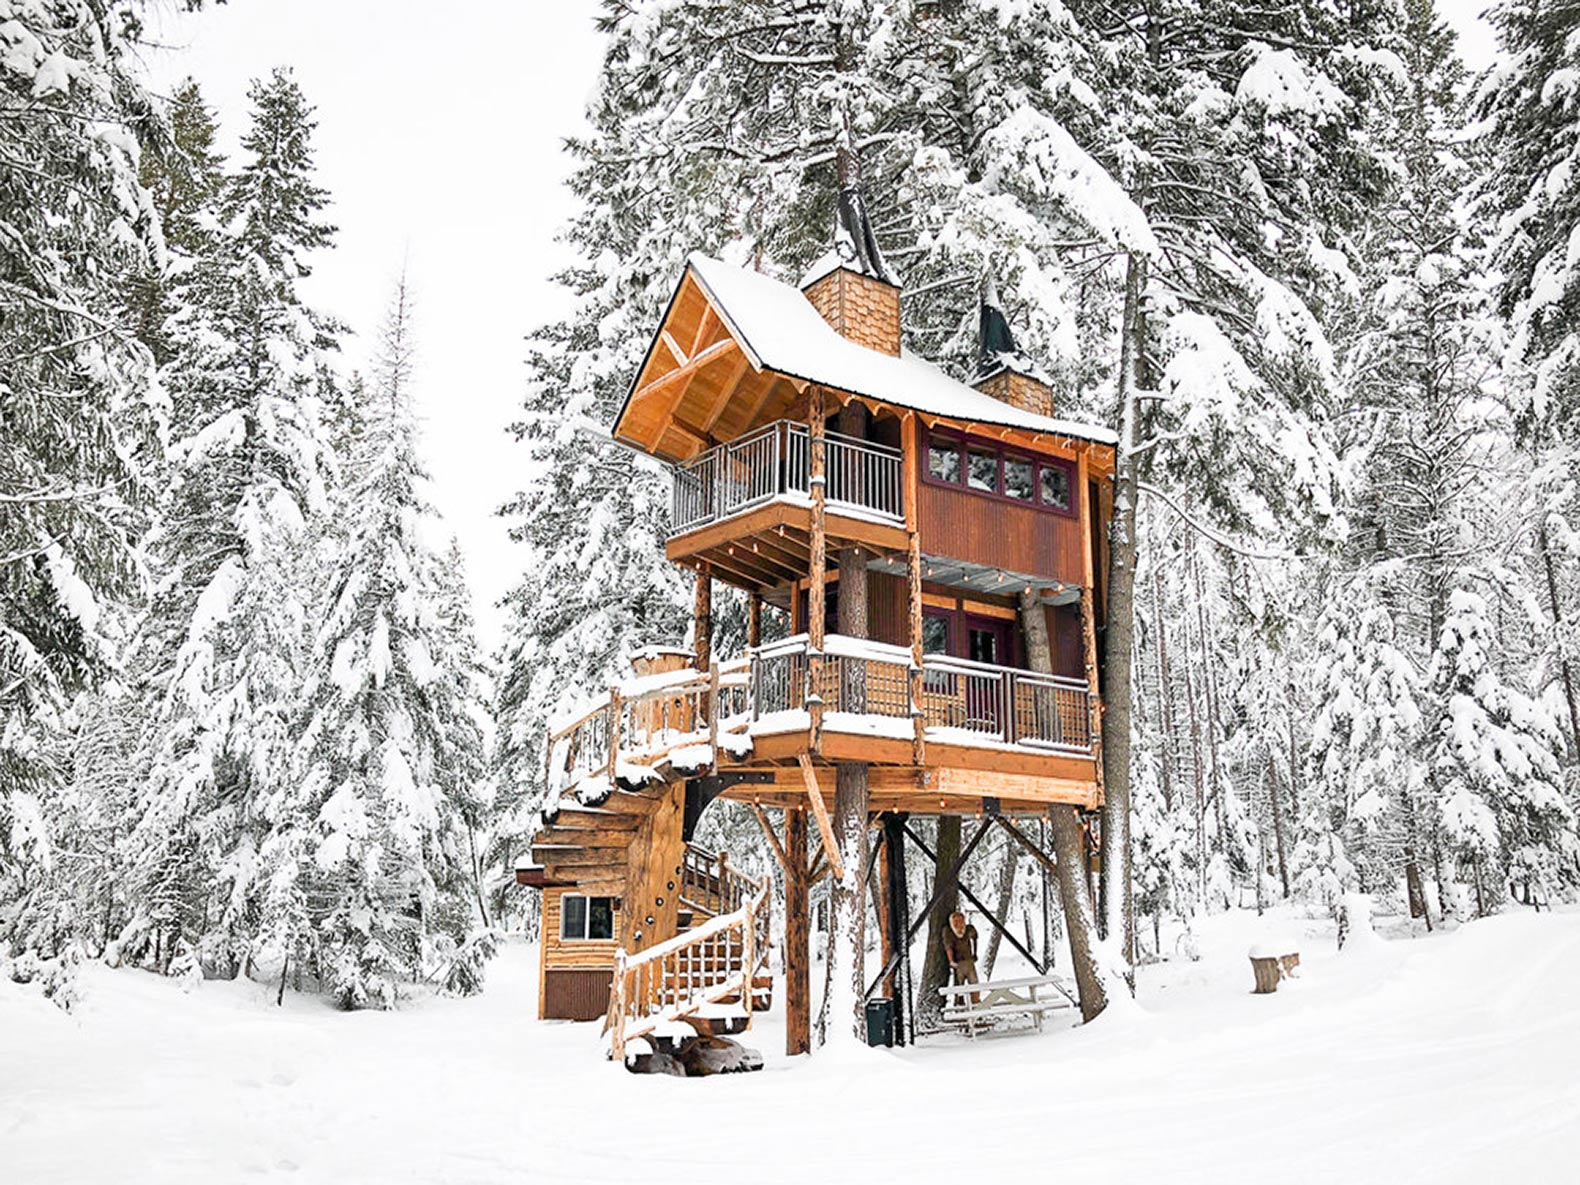 Four Living Trees Grow Through This Dreamy Treehouse Retreat In Montana